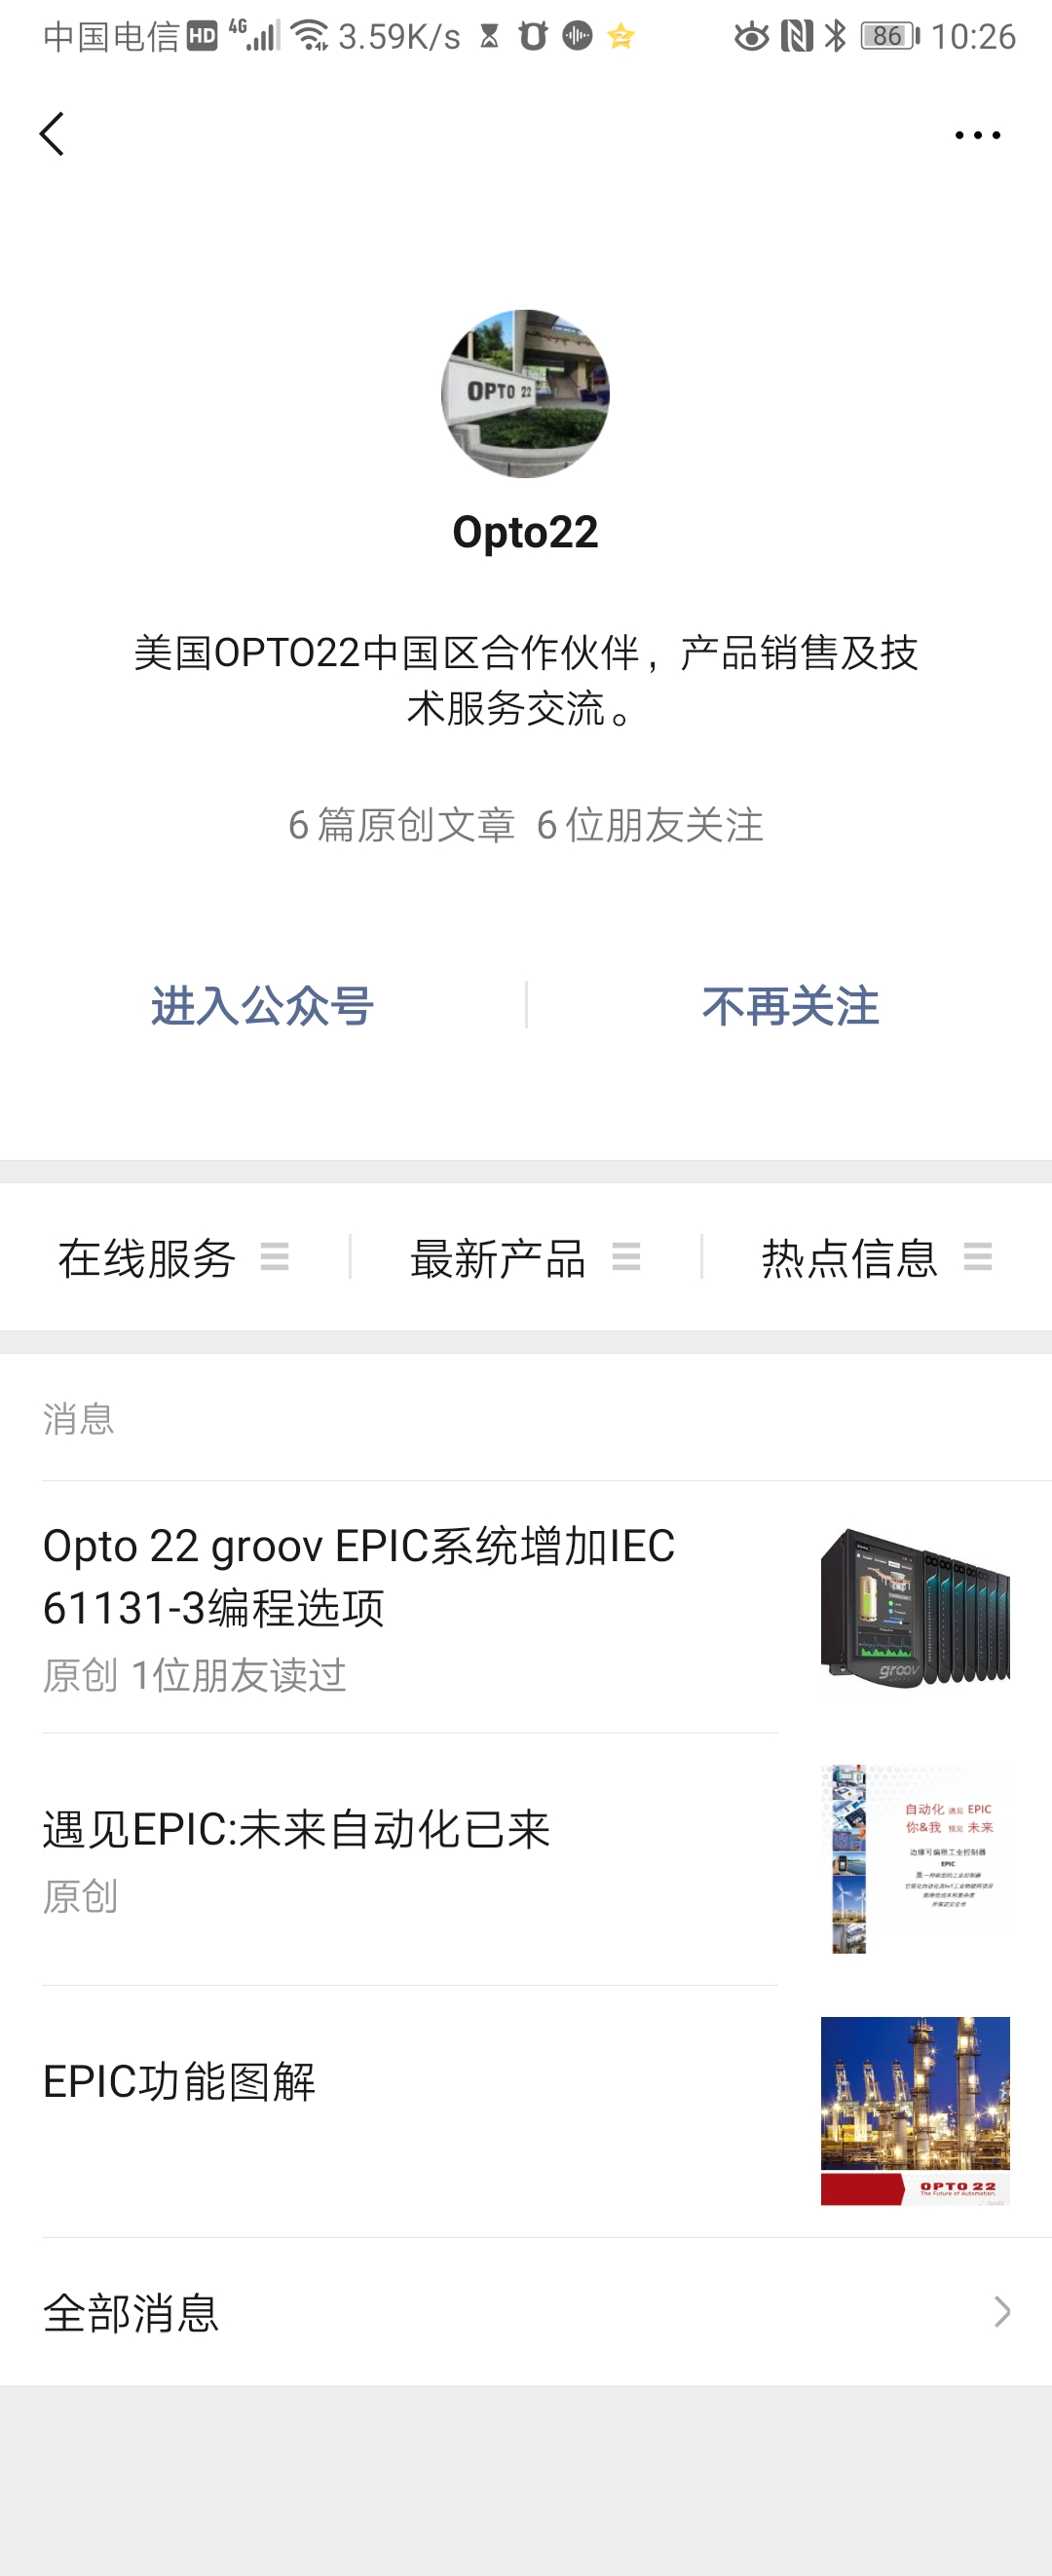 Screenshot_20190620_102633_com.tencent.mm